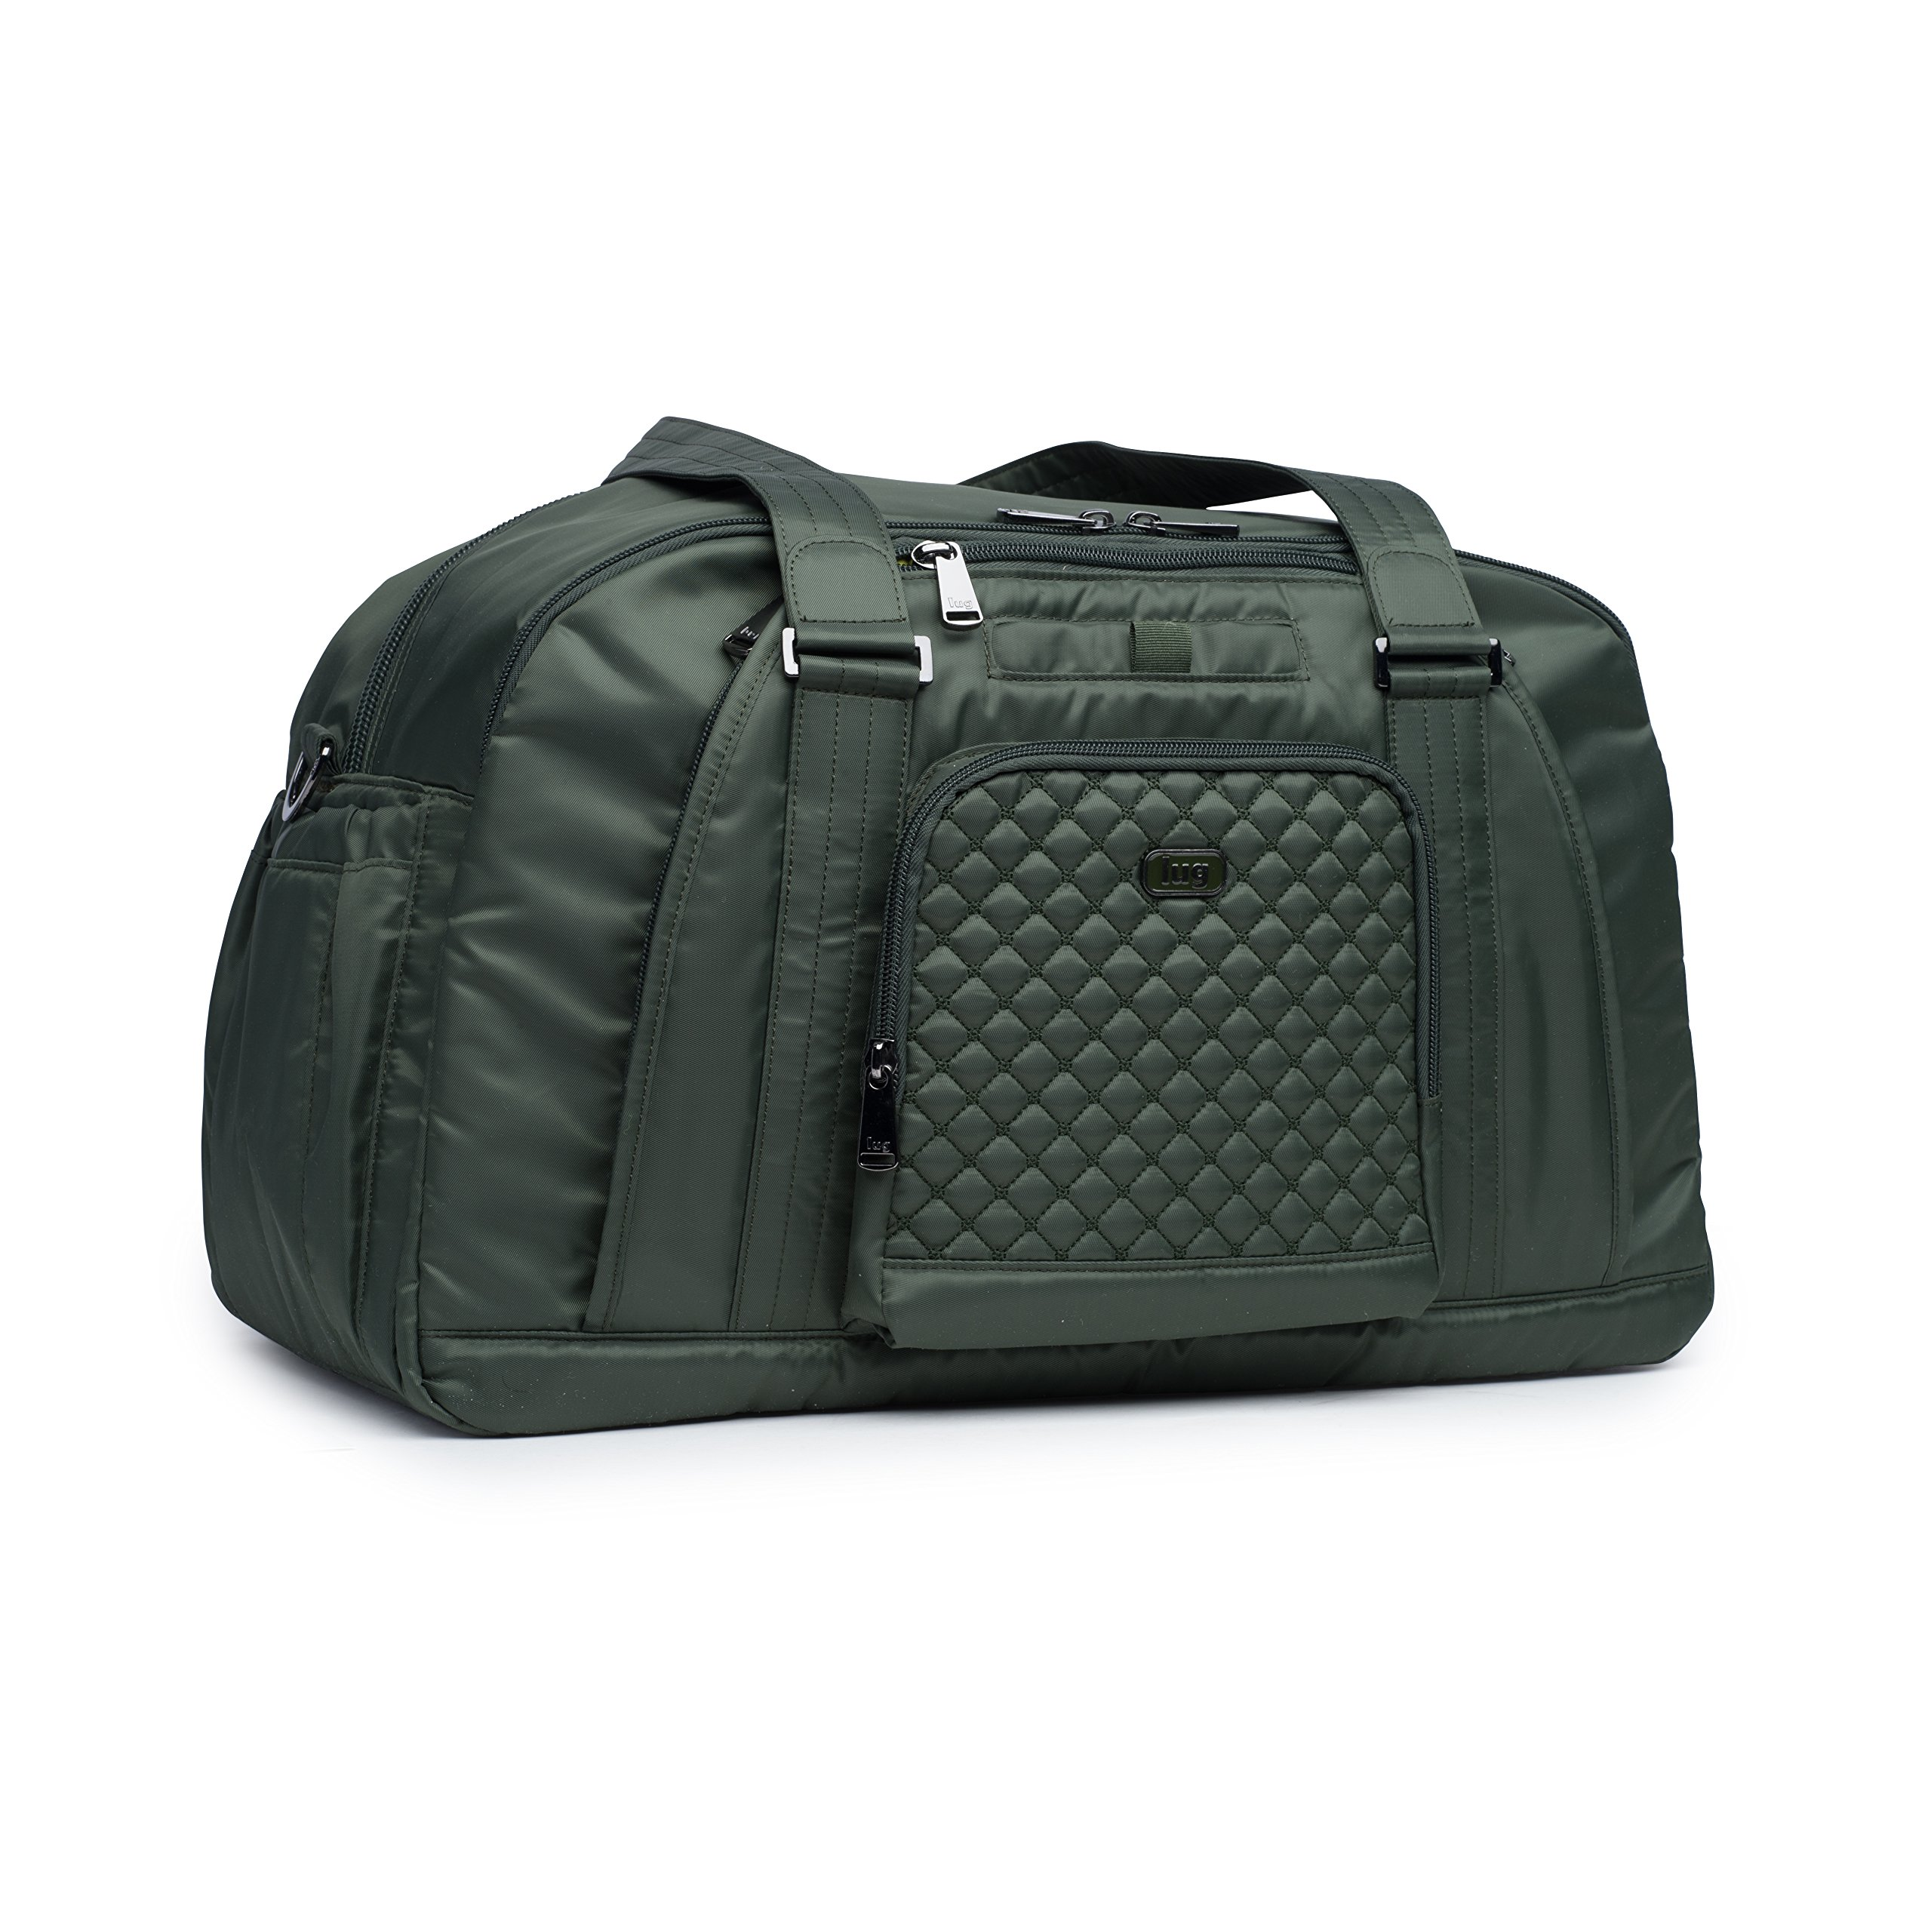 Lug Propeller Gym/Overnight Bag, Olive Green